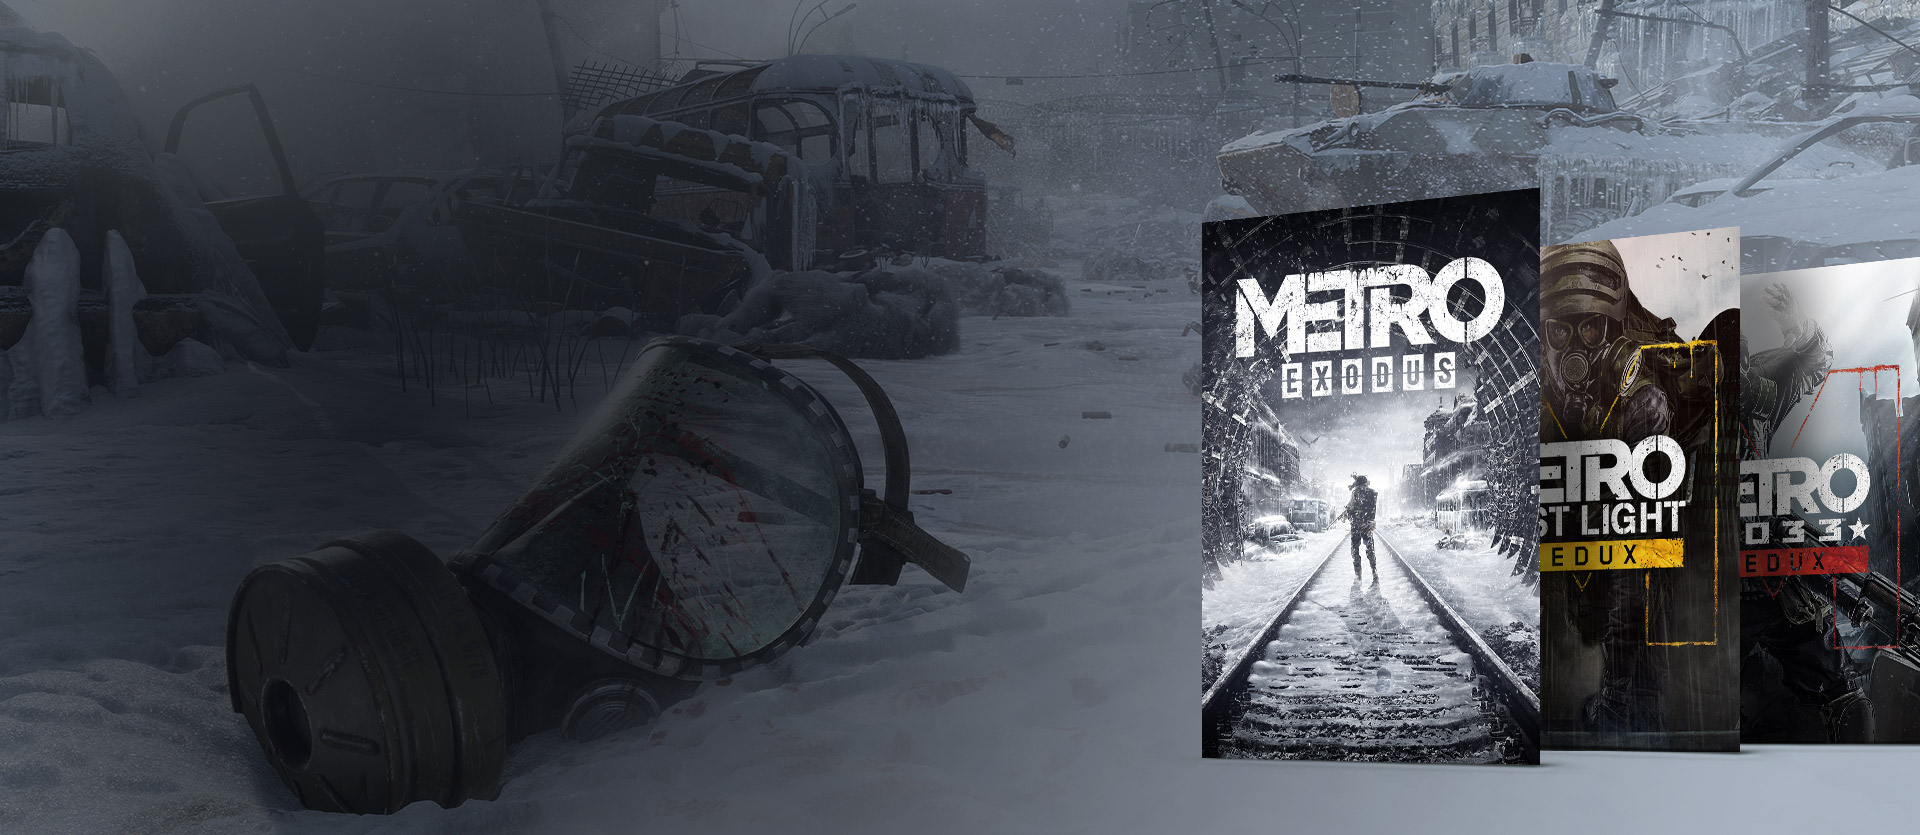 Metro Exodus, Metro 2033 Redux, and Metro: Last Light Redux boxes in front of a snowy decimated town with a broken gas mask.